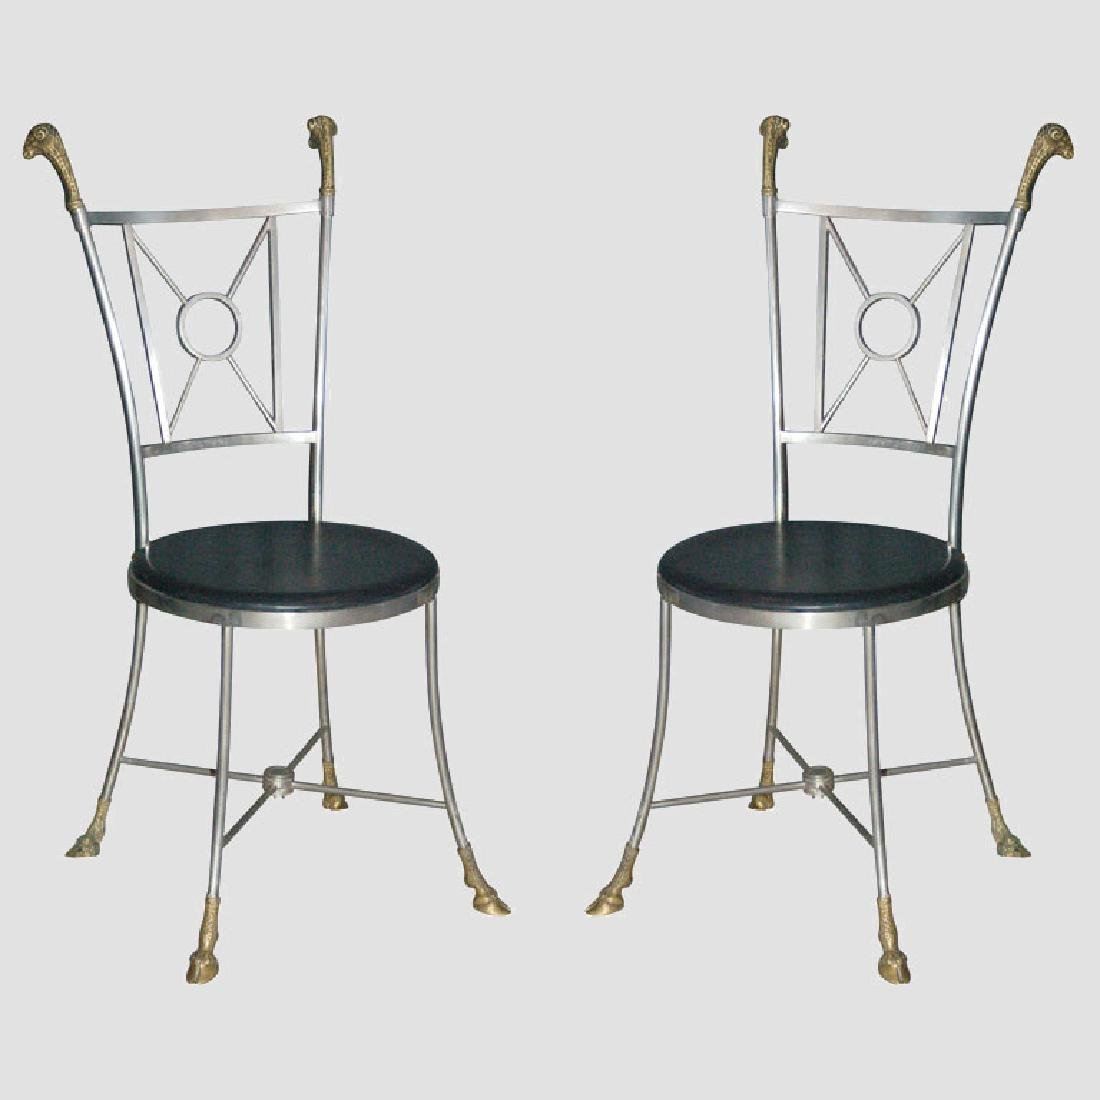 Maison Jansen Steel & Brass Chairs